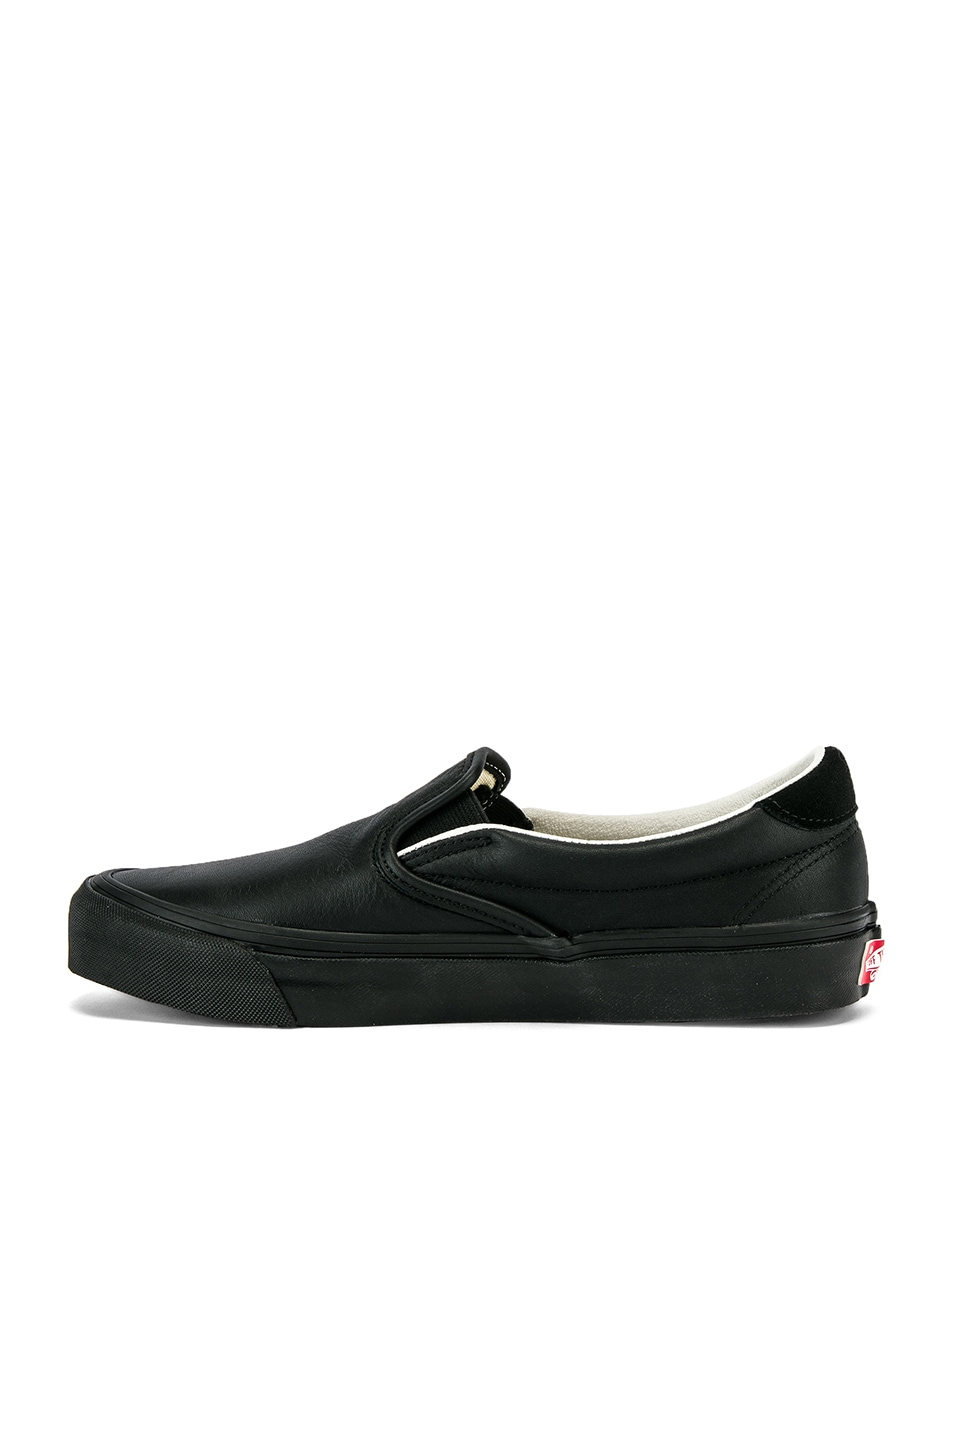 Image 5 of Vans Vault OG Slip-On 59 LX in Black